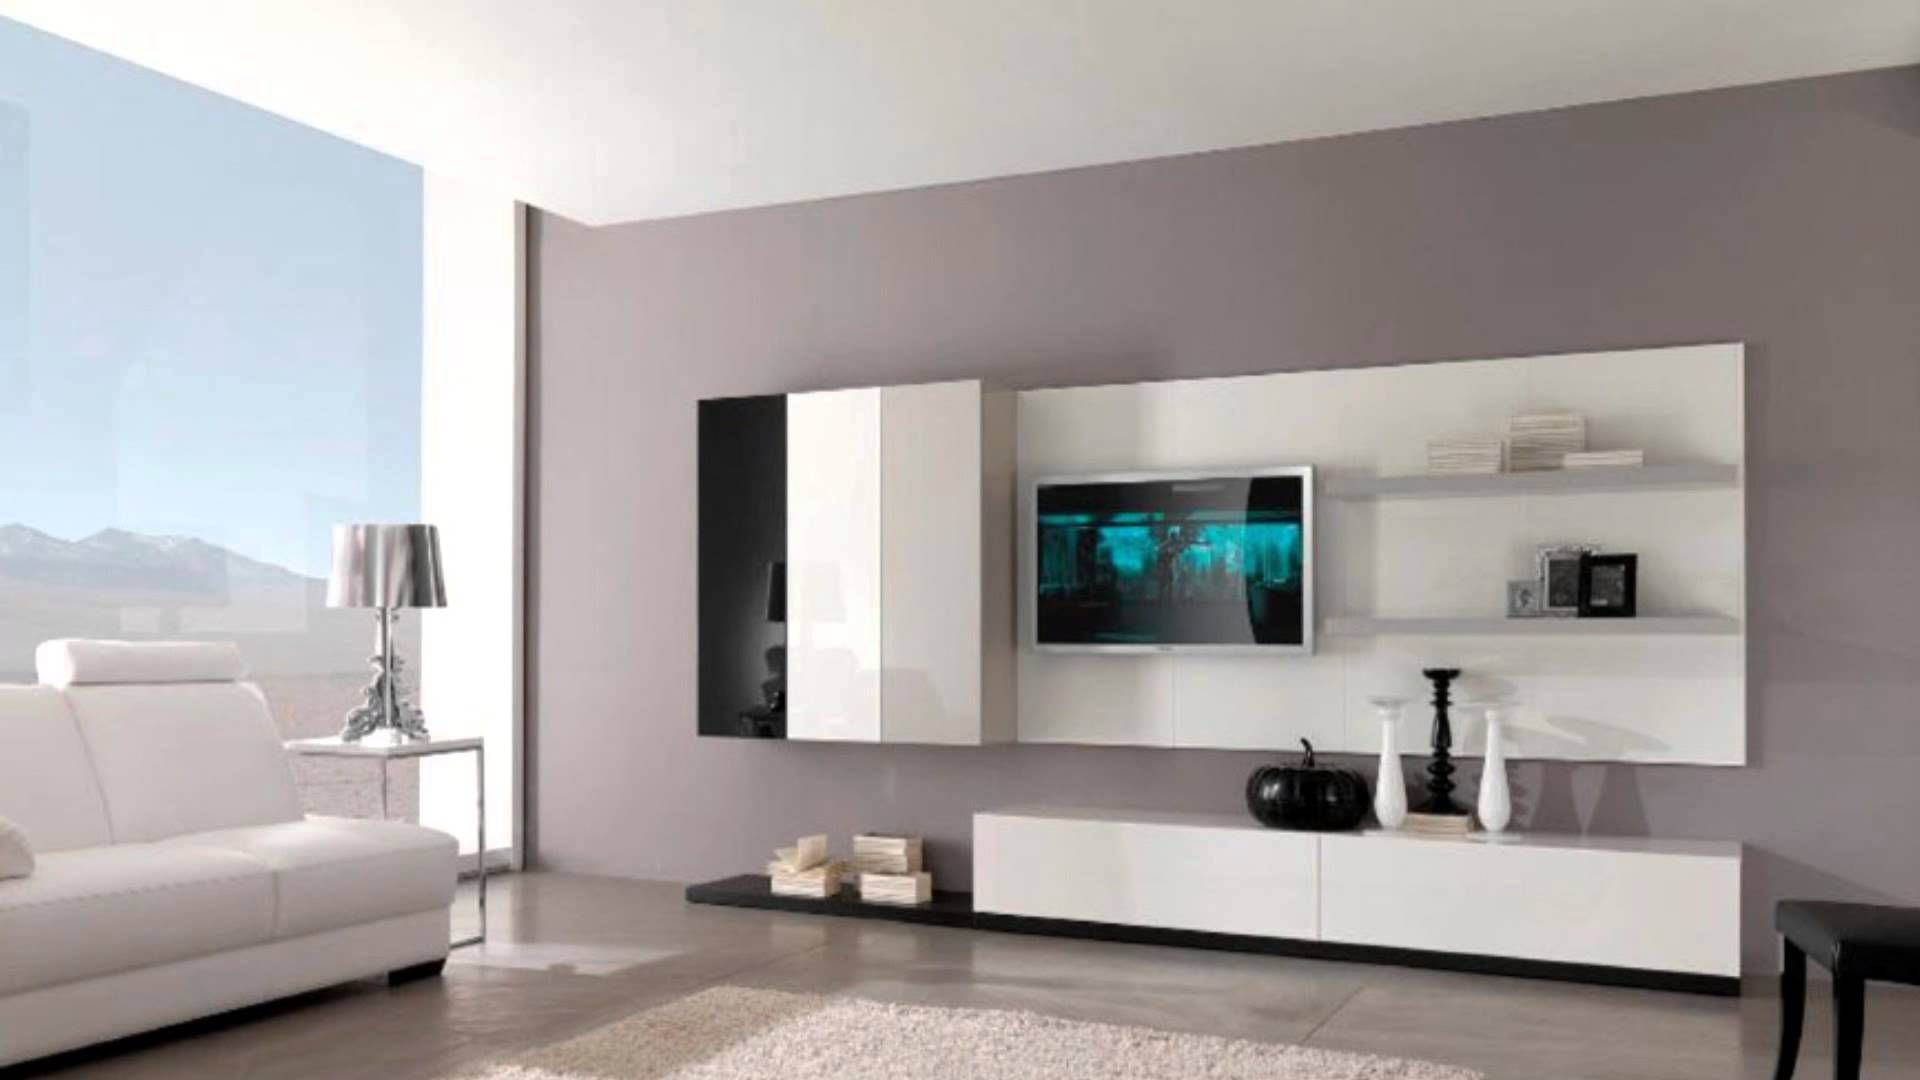 Clearance modern interior house paint colours About Remodel modern ...